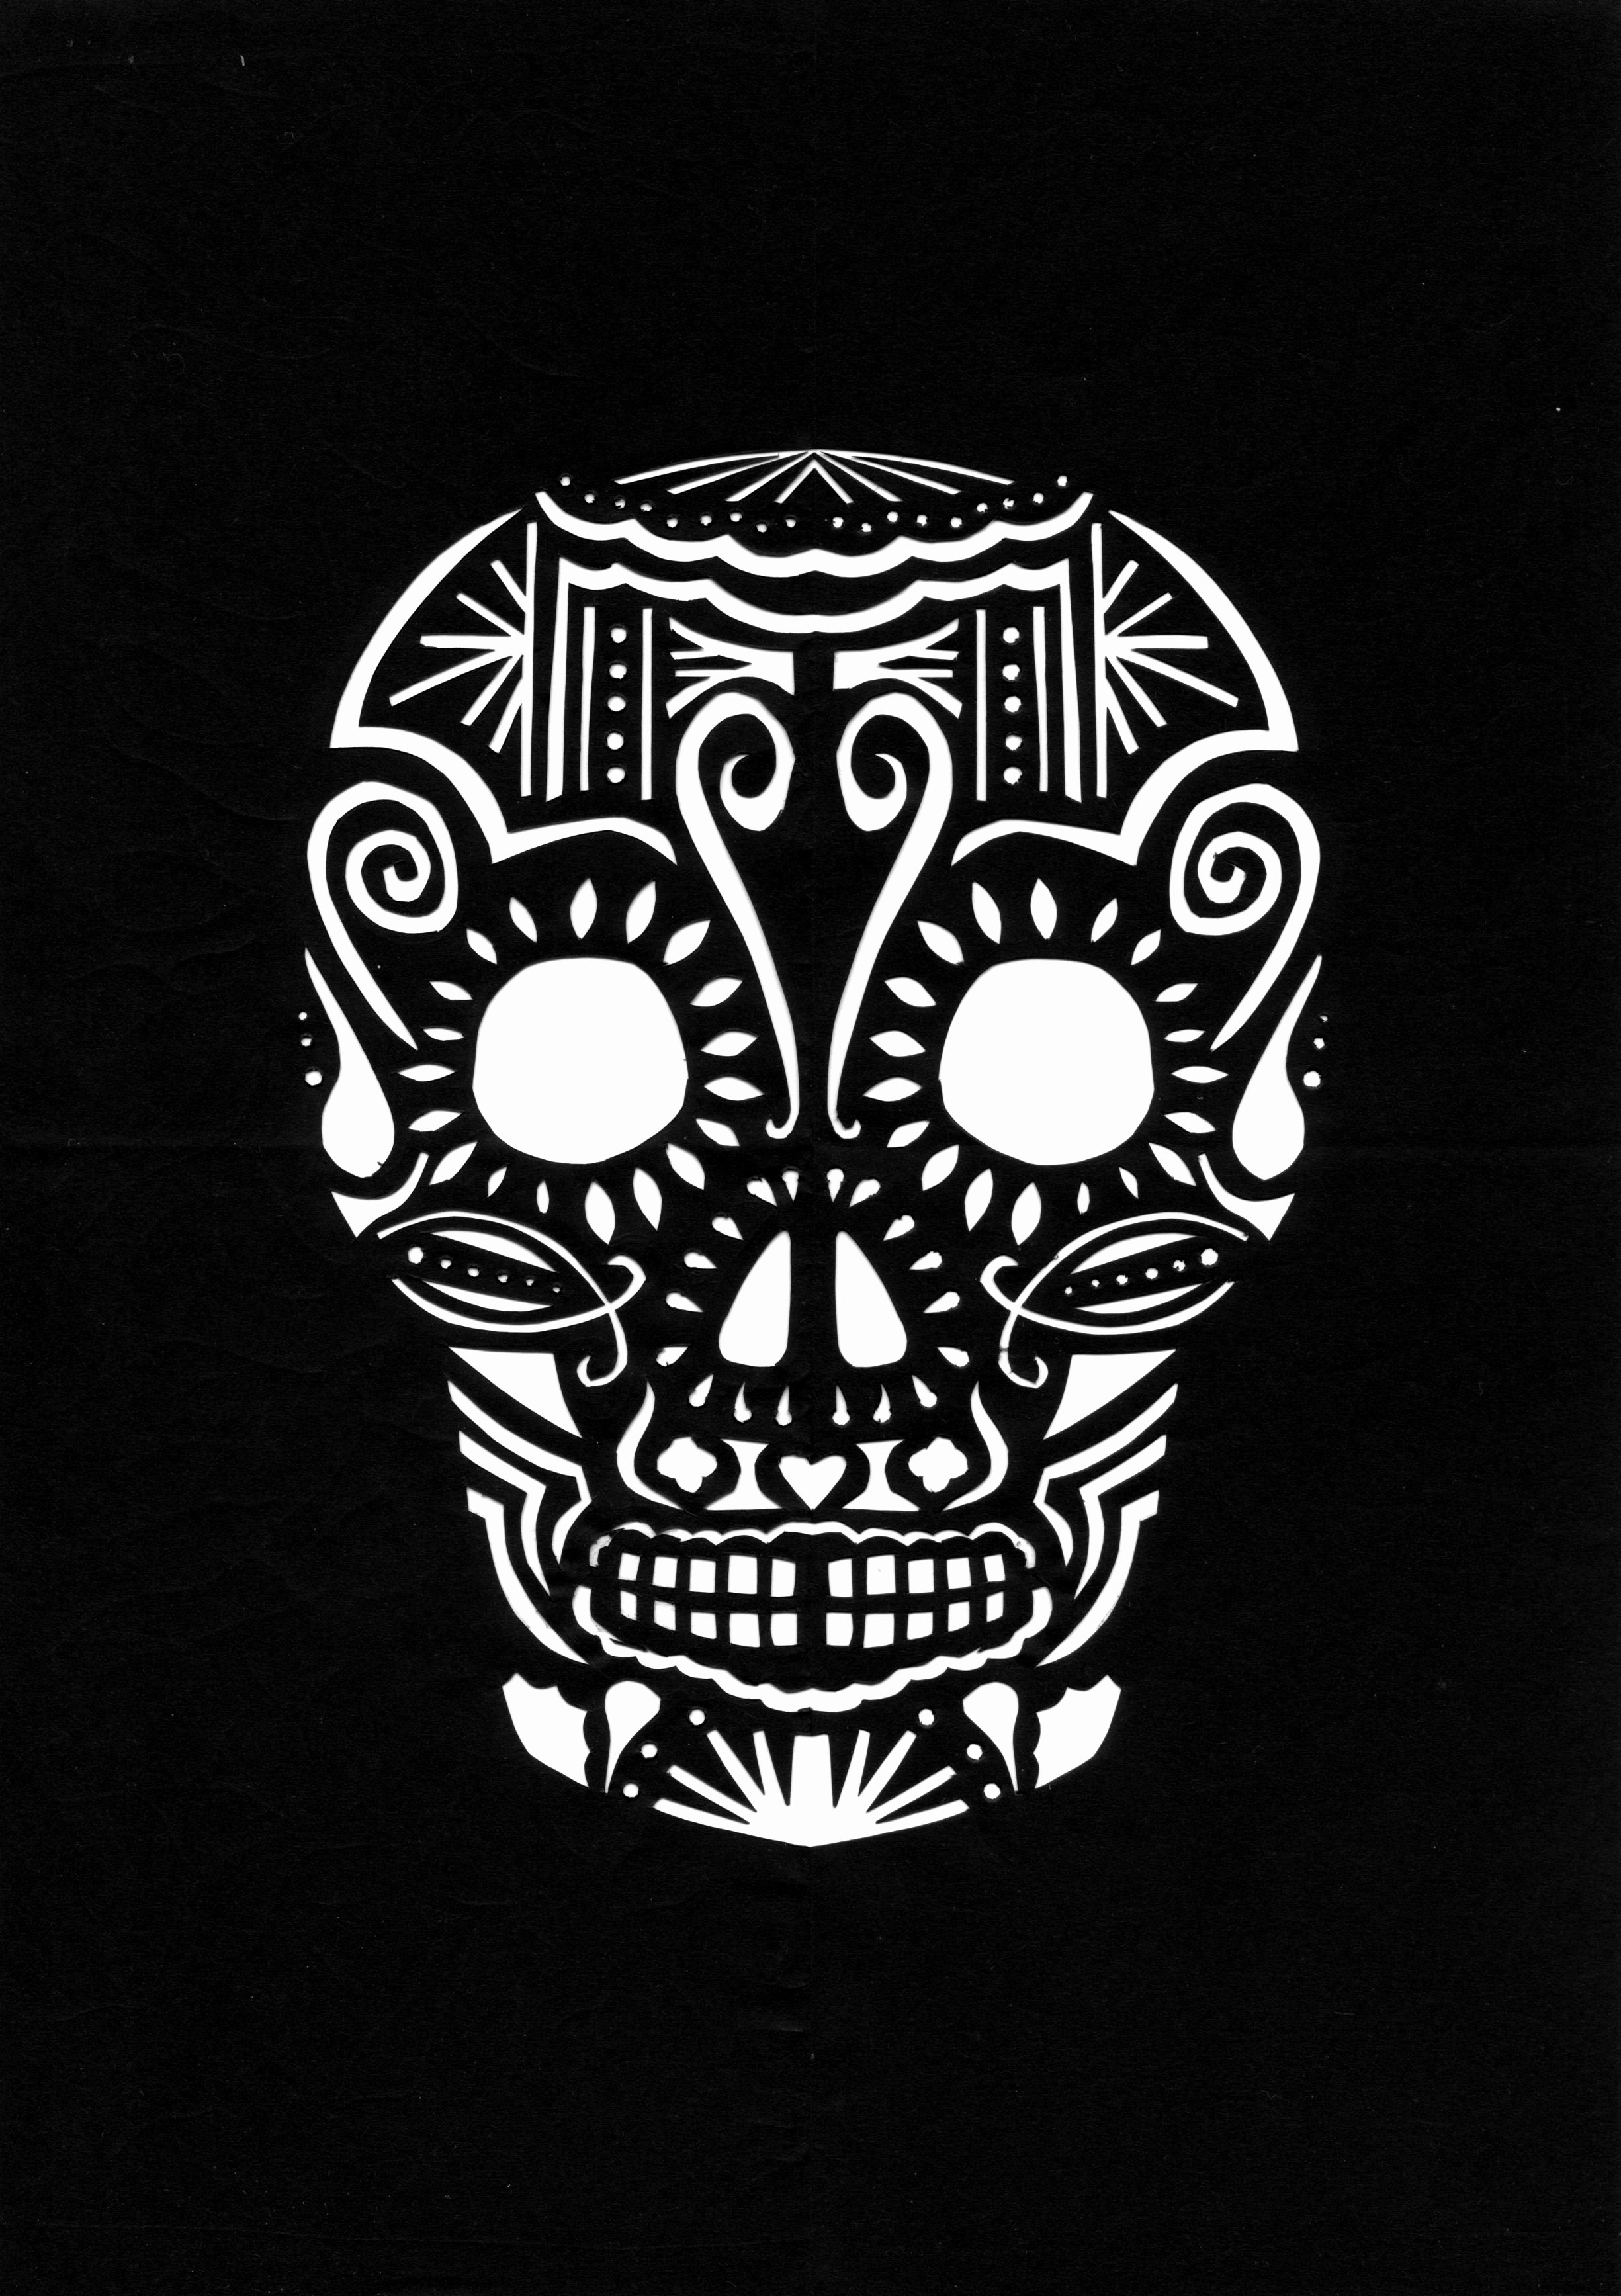 Sugar Skull Pumpkin Stencil Inspirational Day Of the Dead Skull Paper Cut Back with Colorful